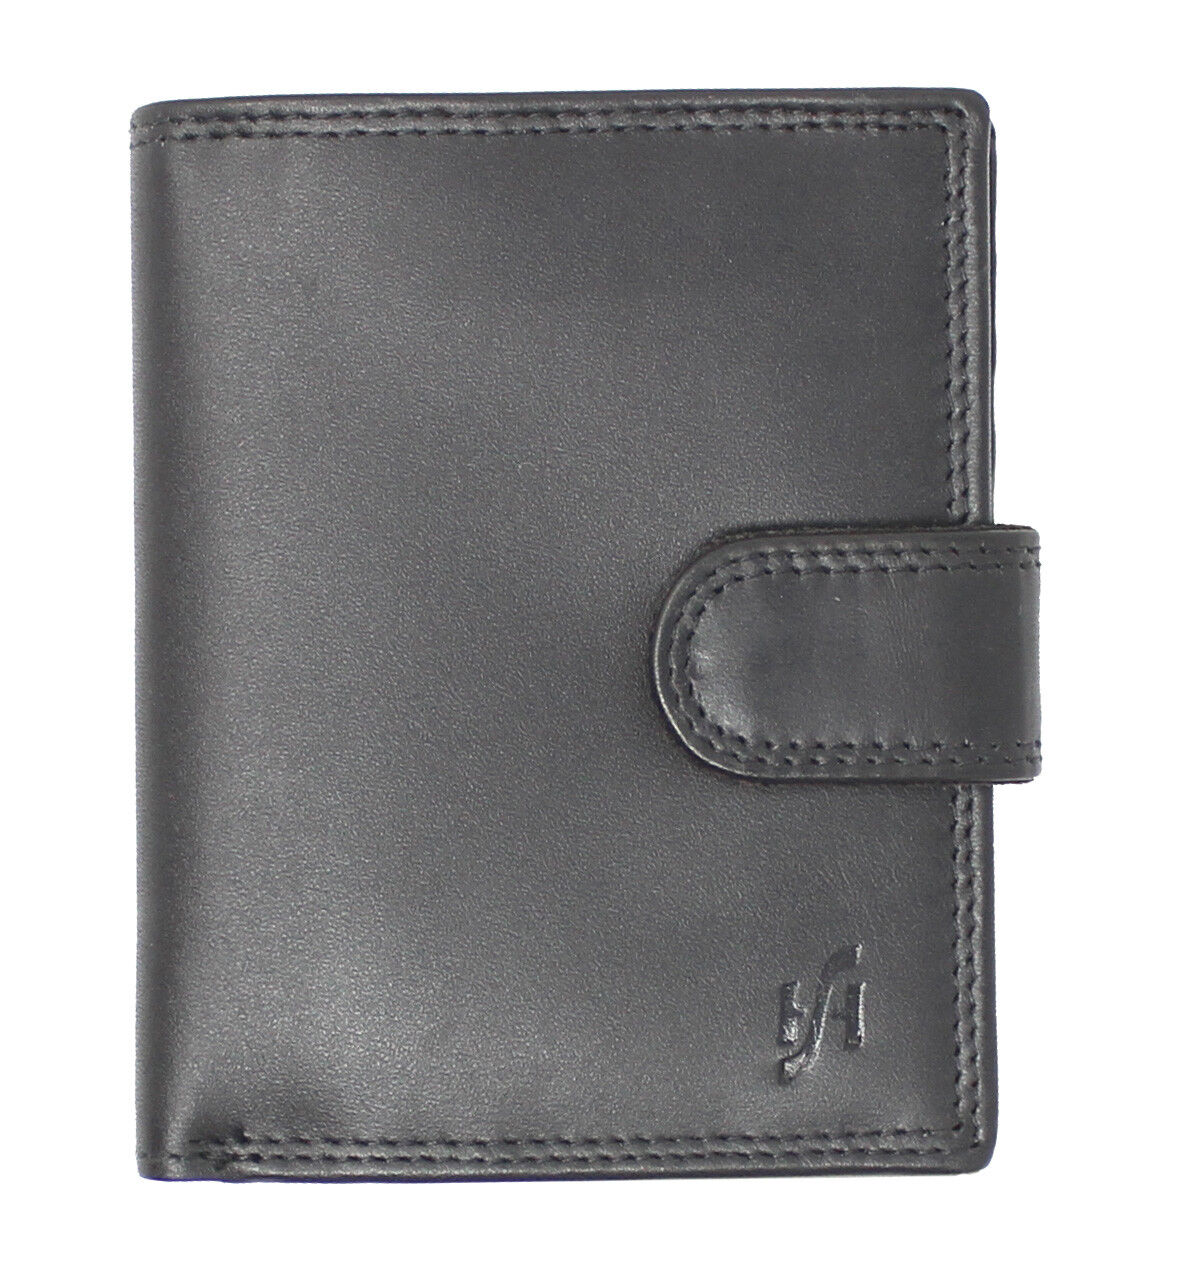 Unisex Genuine Soft Leather Wallet With Side Zip Coin Pocket